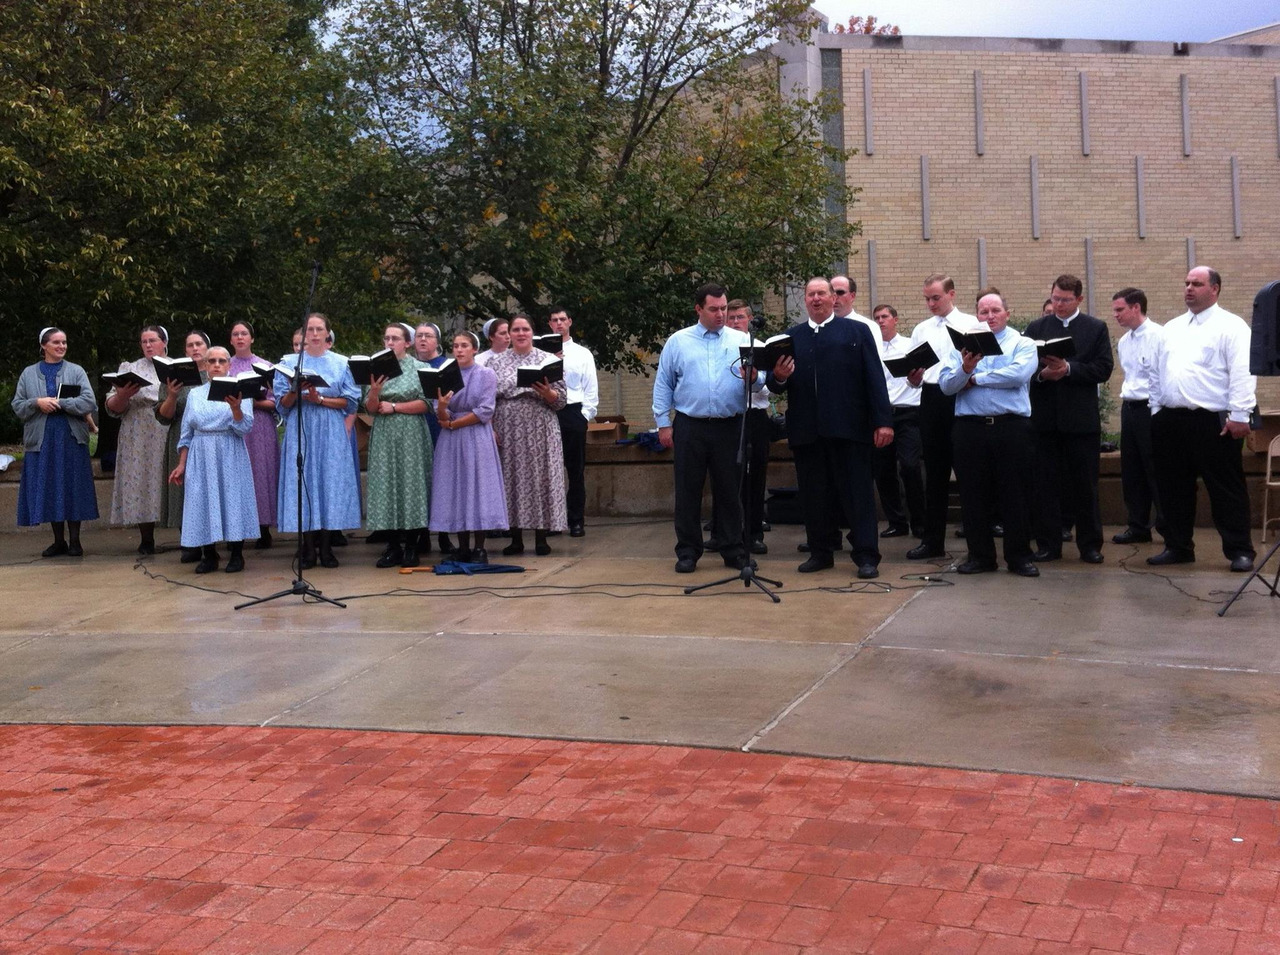 A group of Mennonites from Versailles and Warrensburg gathered at Mizzou's Speakers Circle in October to sing gospel music.